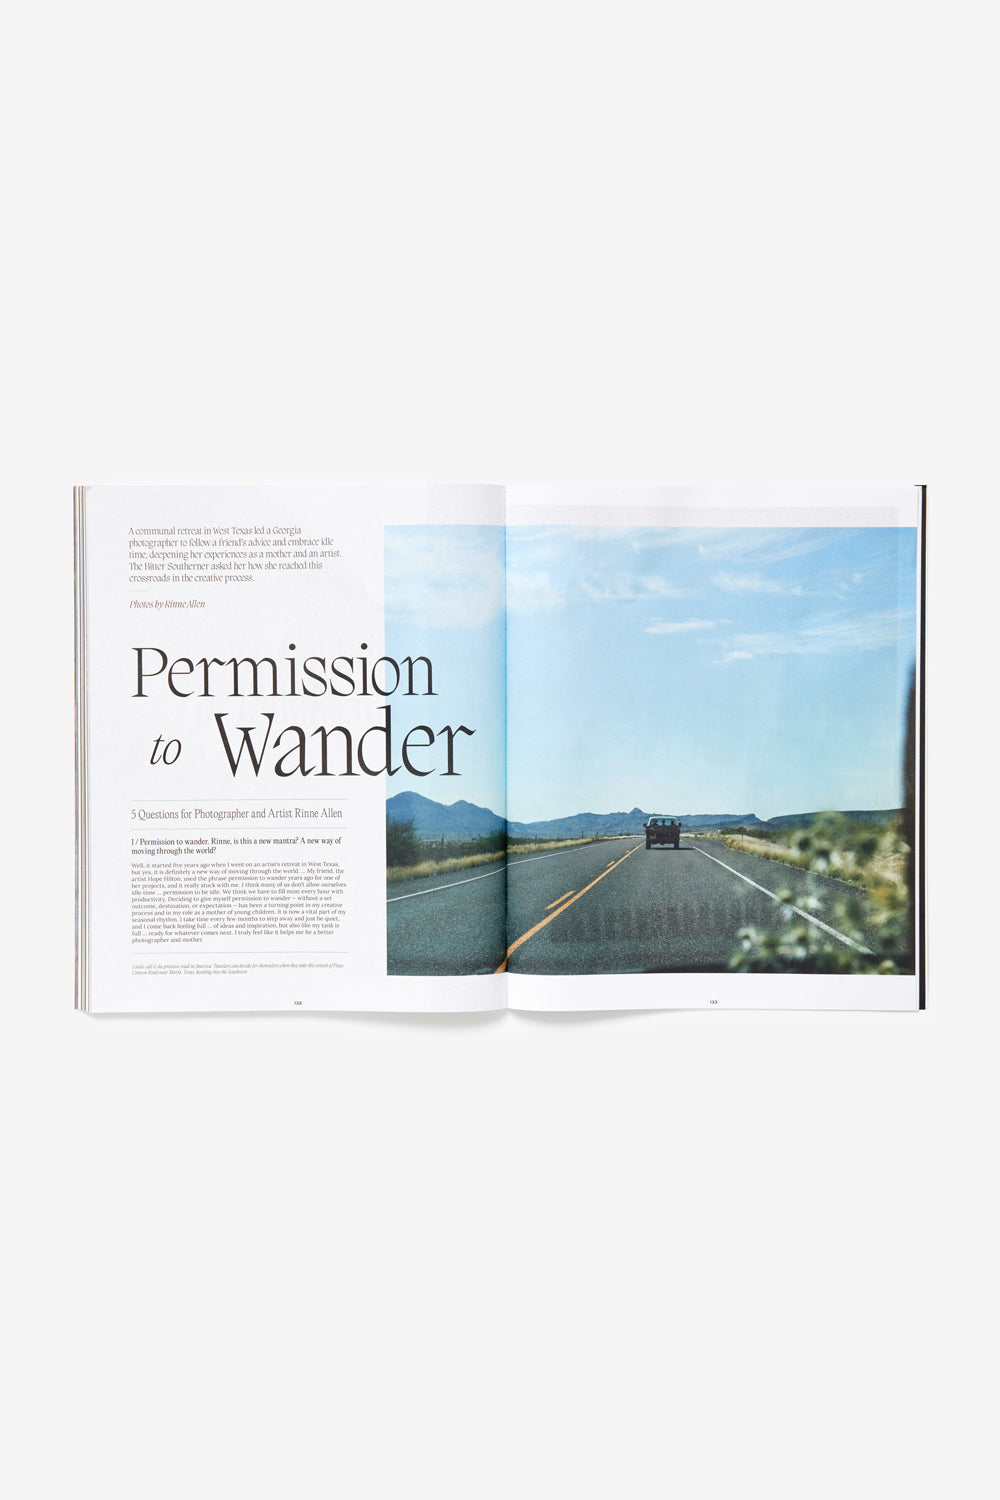 Alabama Chanin The Bitter Southern Photograph Interview Magazine by Rinne Allen